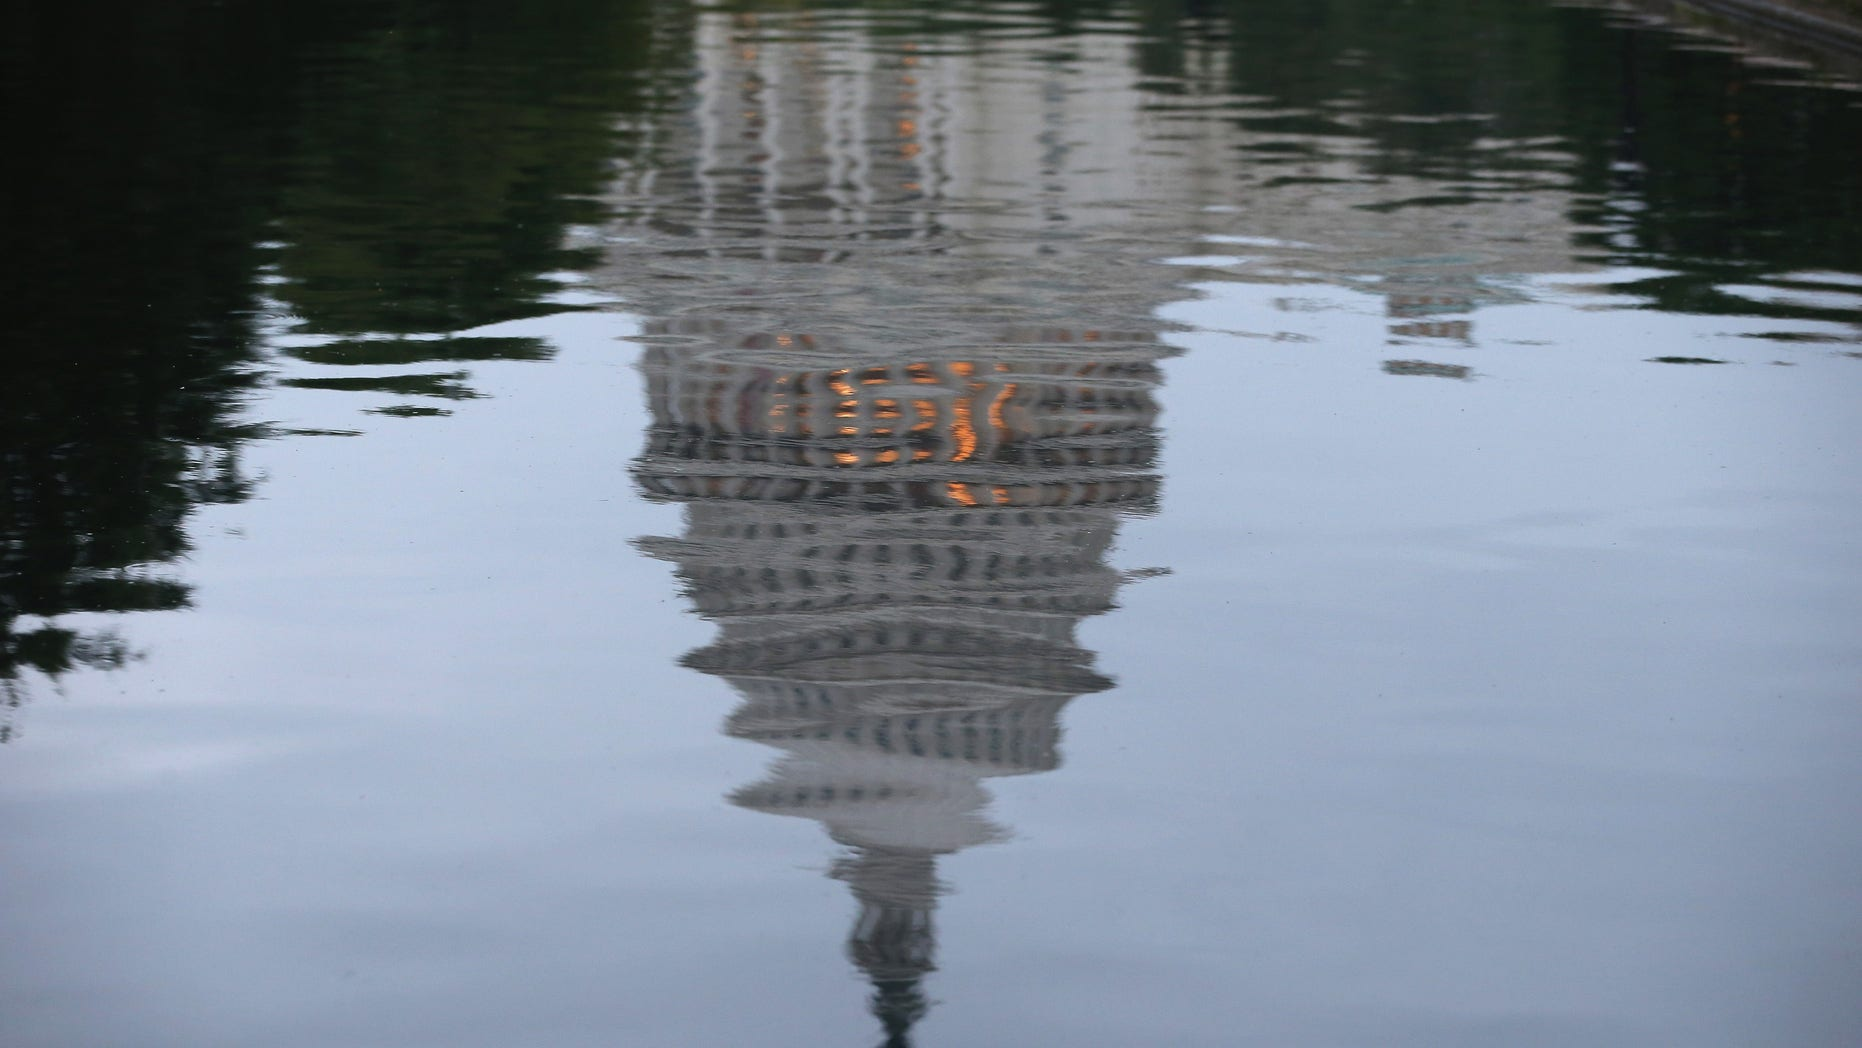 WASHINGTON, DC - JUNE 11:  The U.S. Capitol is reflected in water on the morning of June 11, 2014 in Washington, DC. Yesterday House Majority Leader Eric Cantor (R-VA) lost his Virginia primary to Tea Party challenger Dave Brat.  (Photo by Mark Wilson/Getty Images)